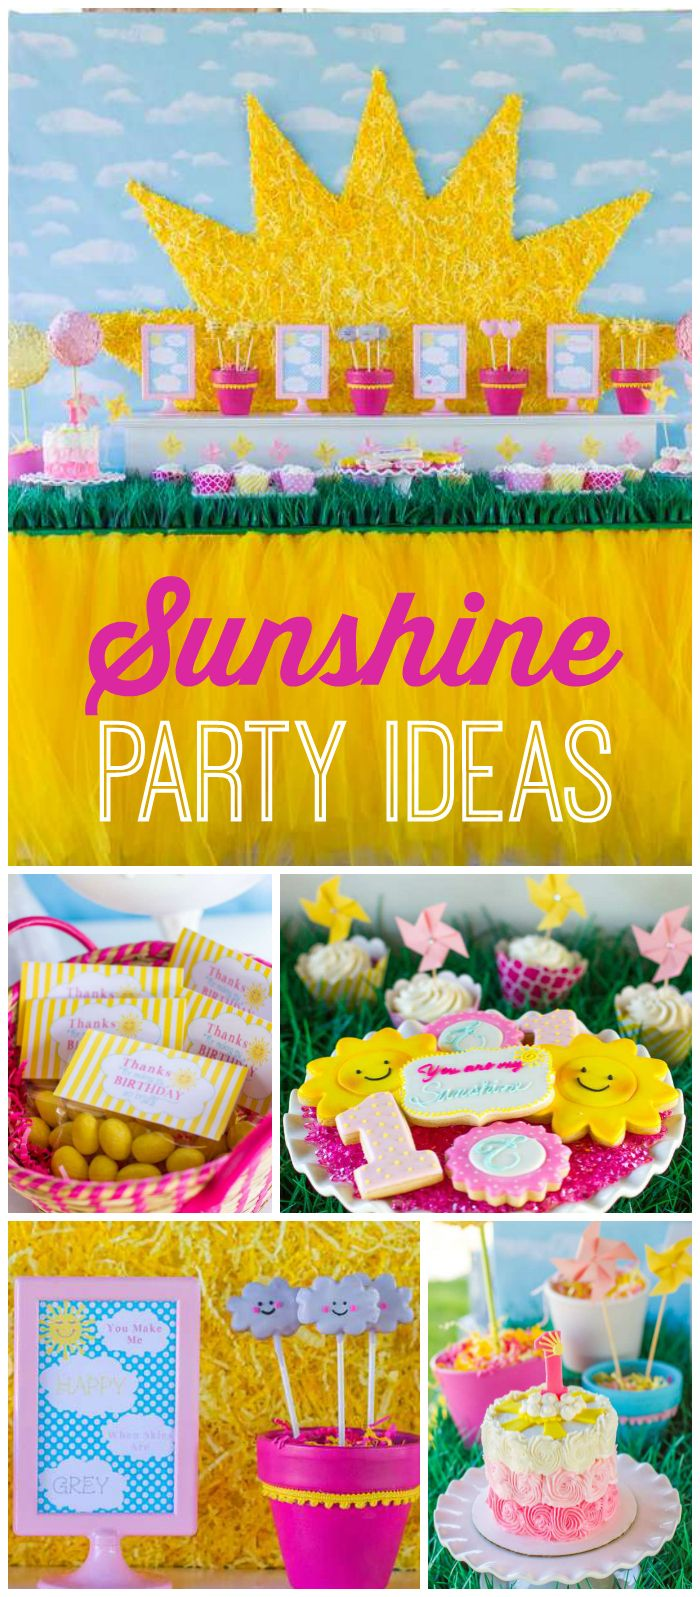 131 best Sunshine Party Ideas images on Pinterest | Girl parties ...